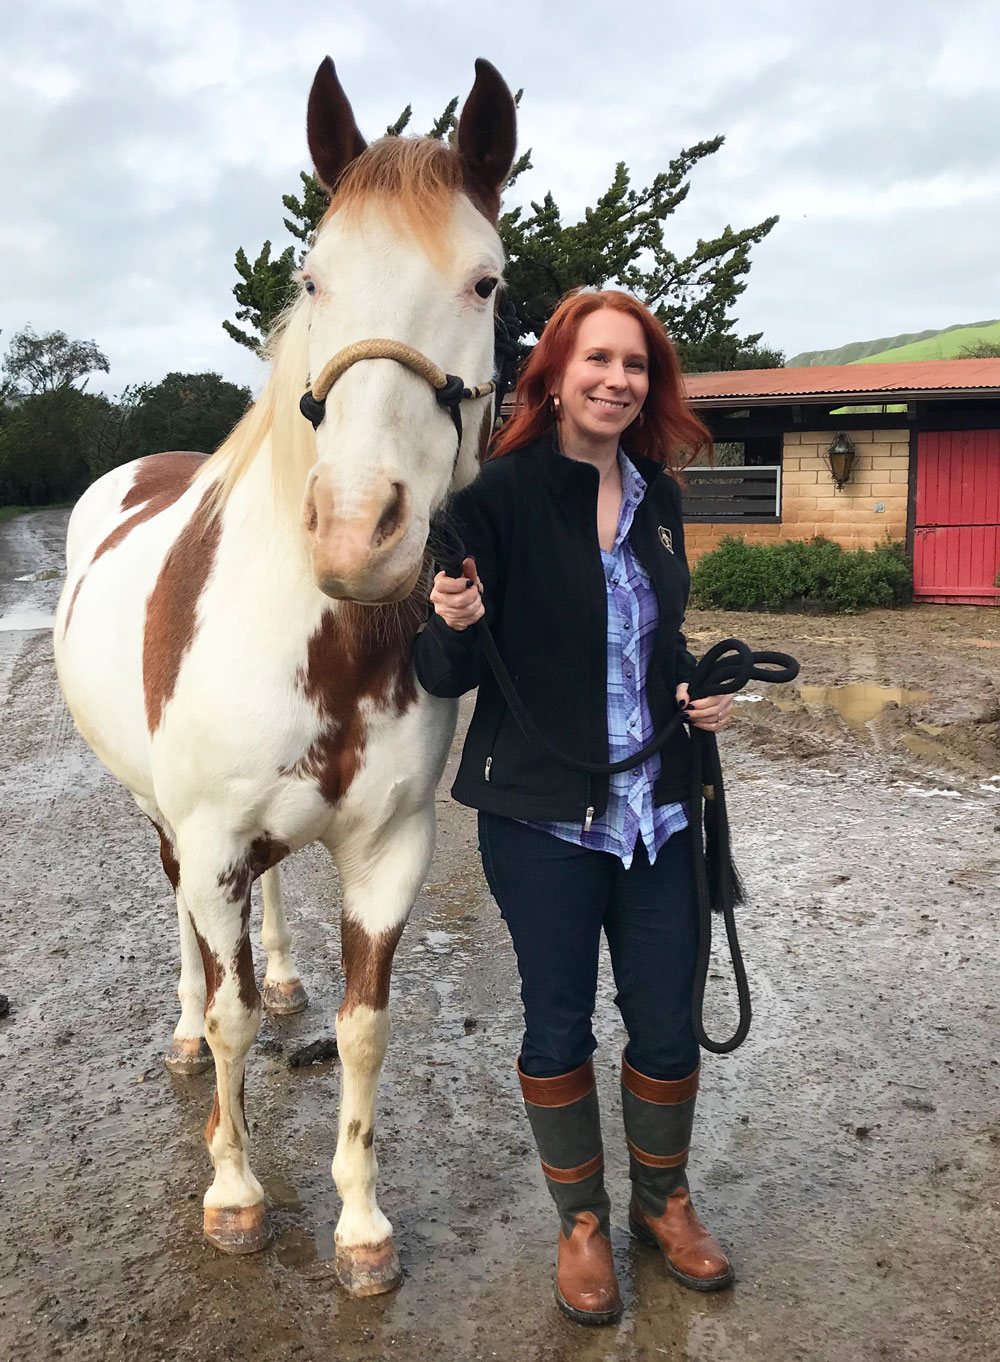 Holly and Isadora-Cruce, one of Return to Freedom's Spanish Mustangs, who has also been made into a Breyer model horse.